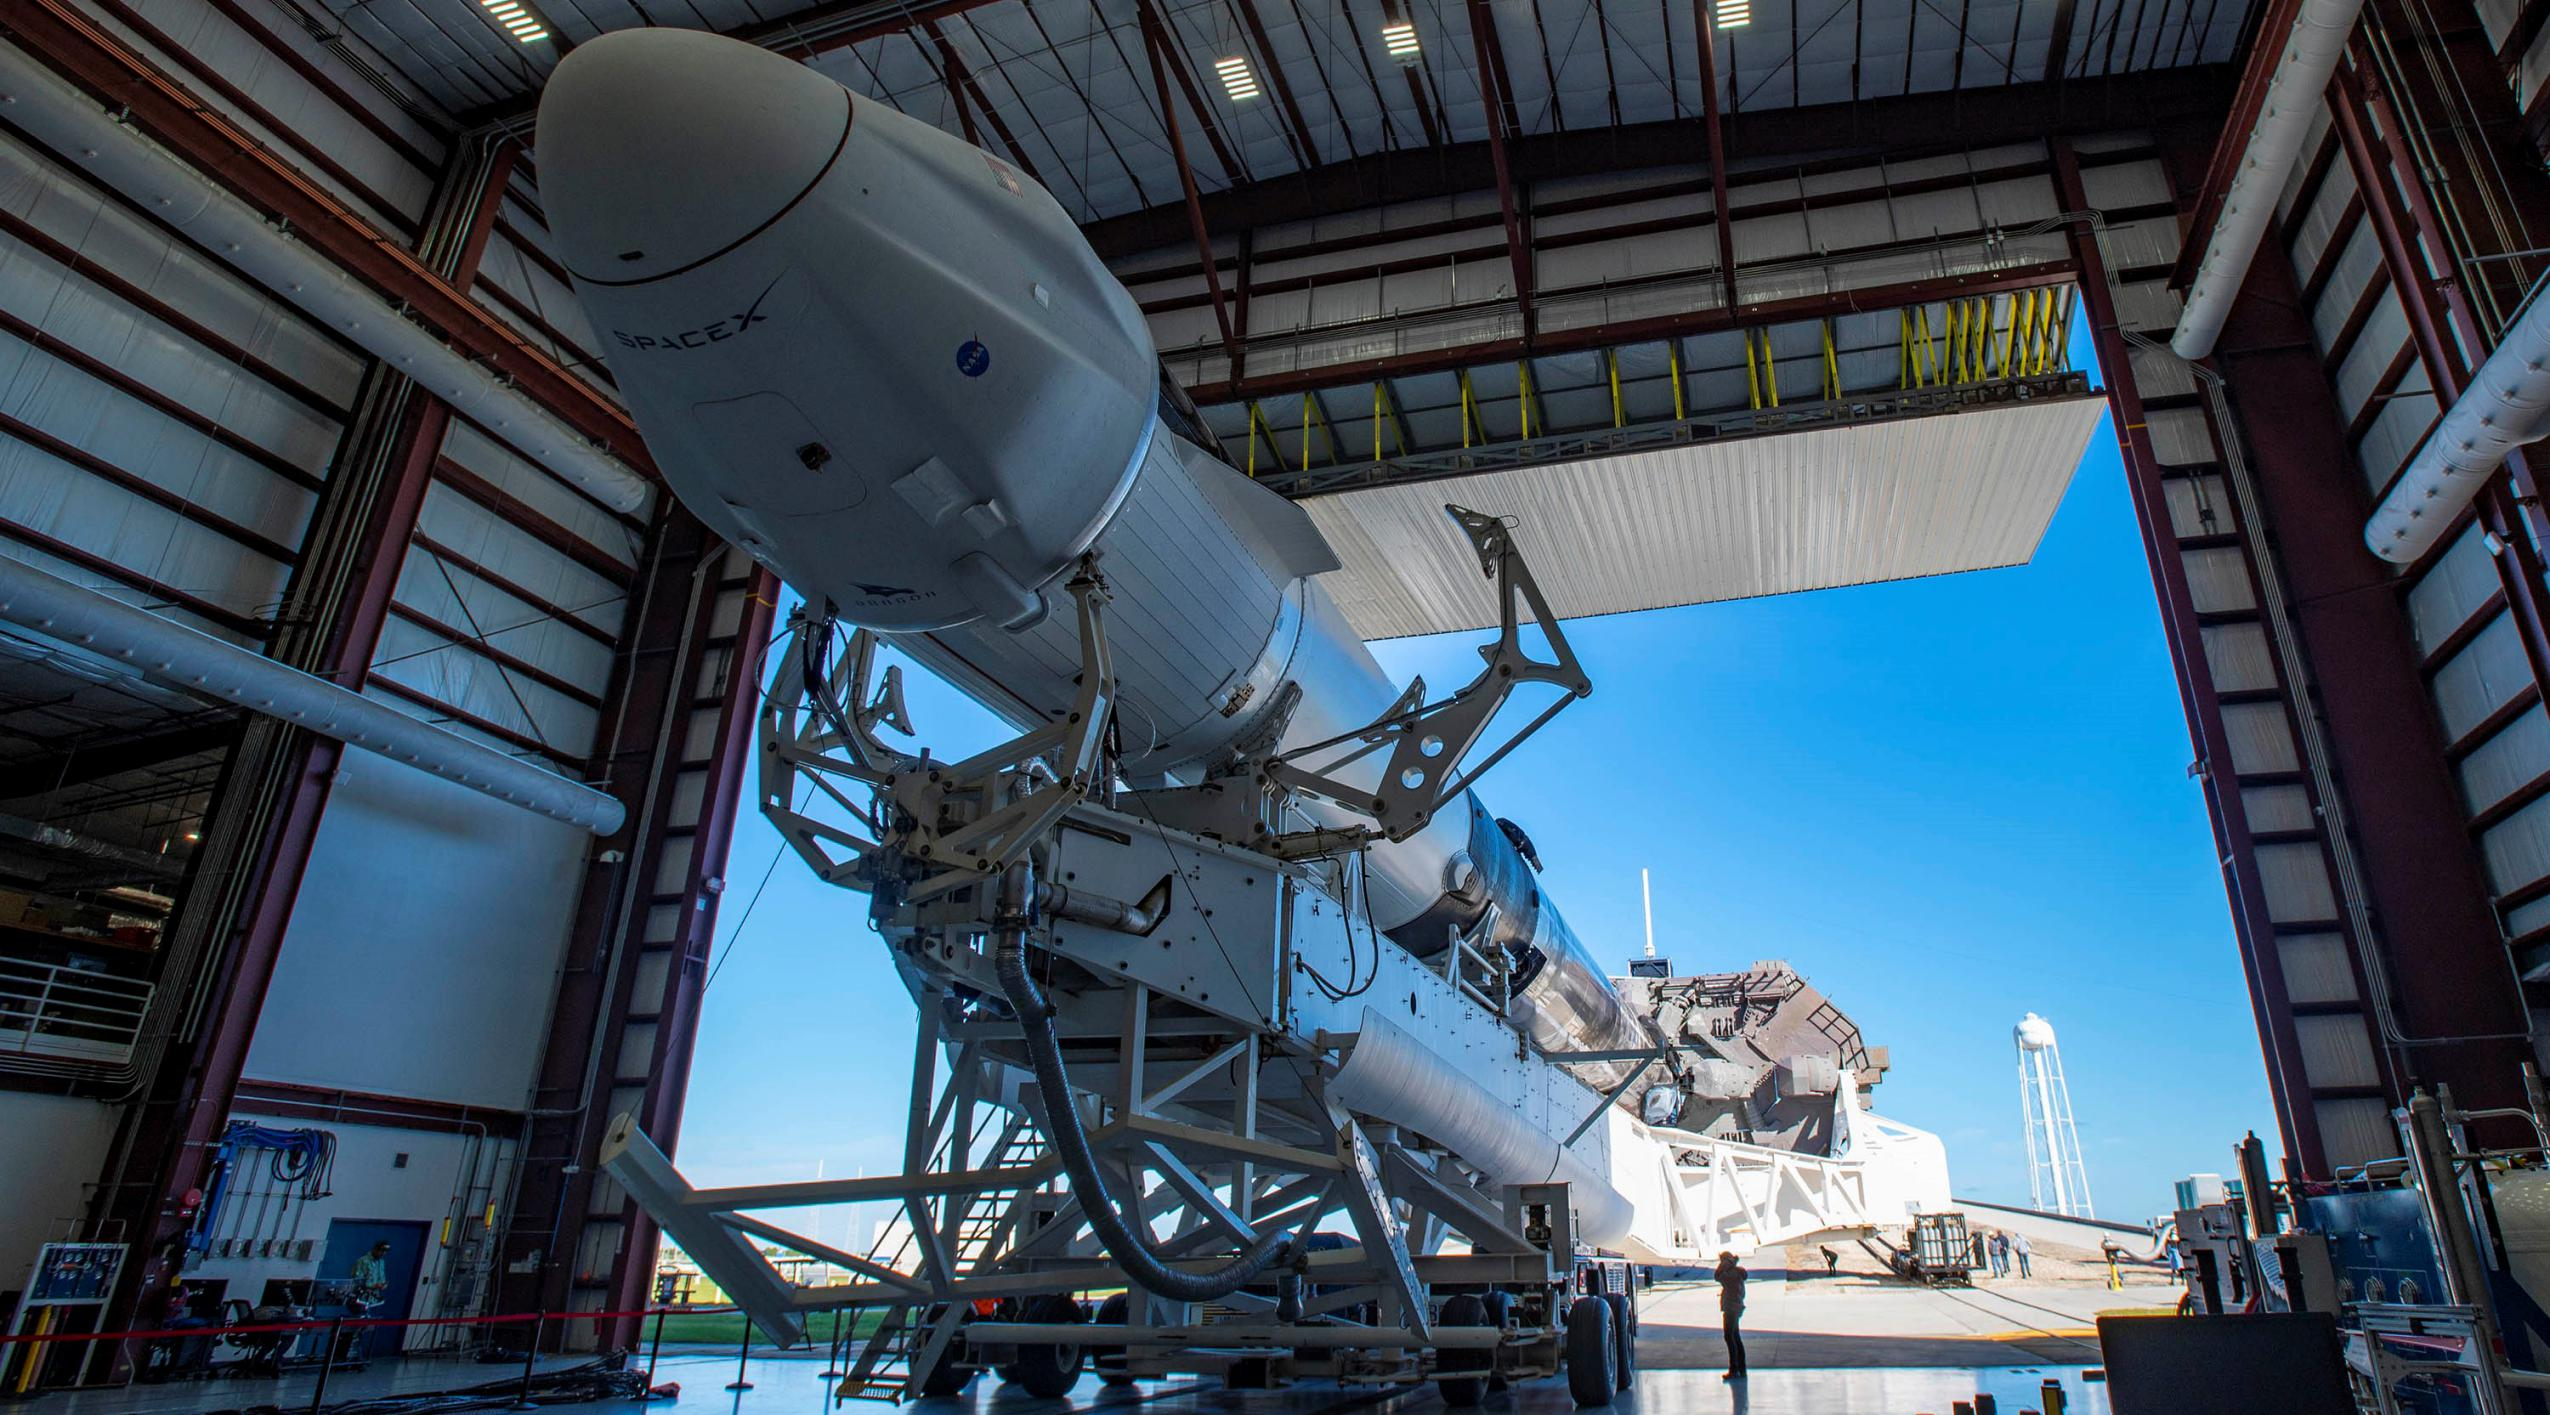 CRS-21 Cargo Dragon 2 Falcon 9 B1058 120220 (SpaceX) rollout 1 crop (c)